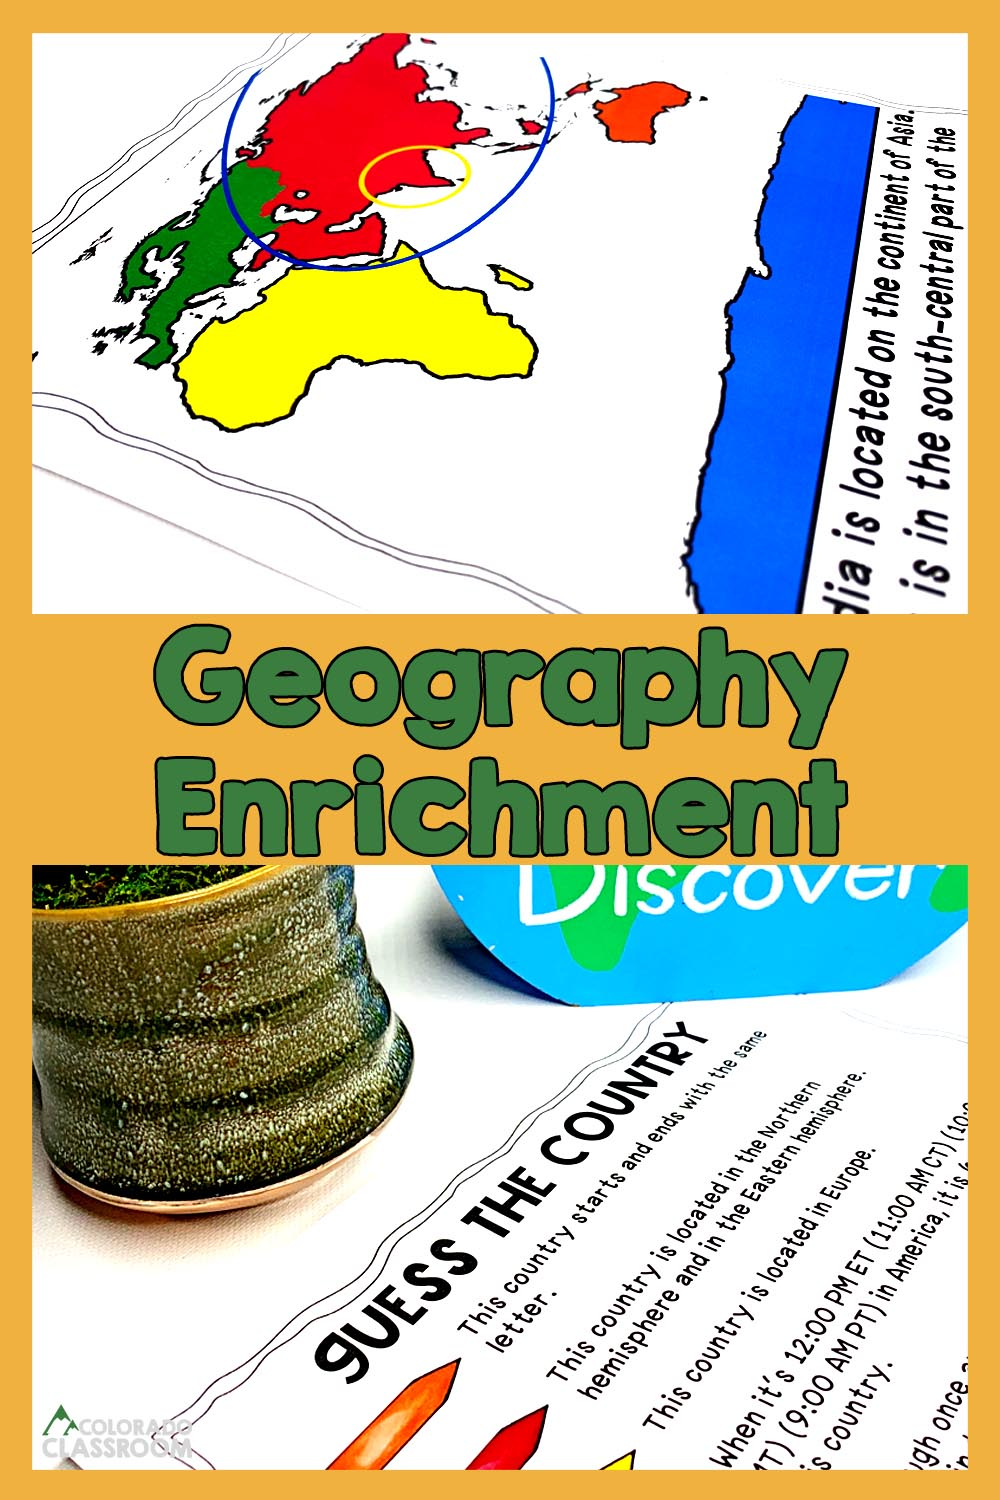 """Two geography enrichment activities with the text """"Geography Enrichment"""" on top and the logo """"Colorado Classroom"""" in the bottom left corner."""